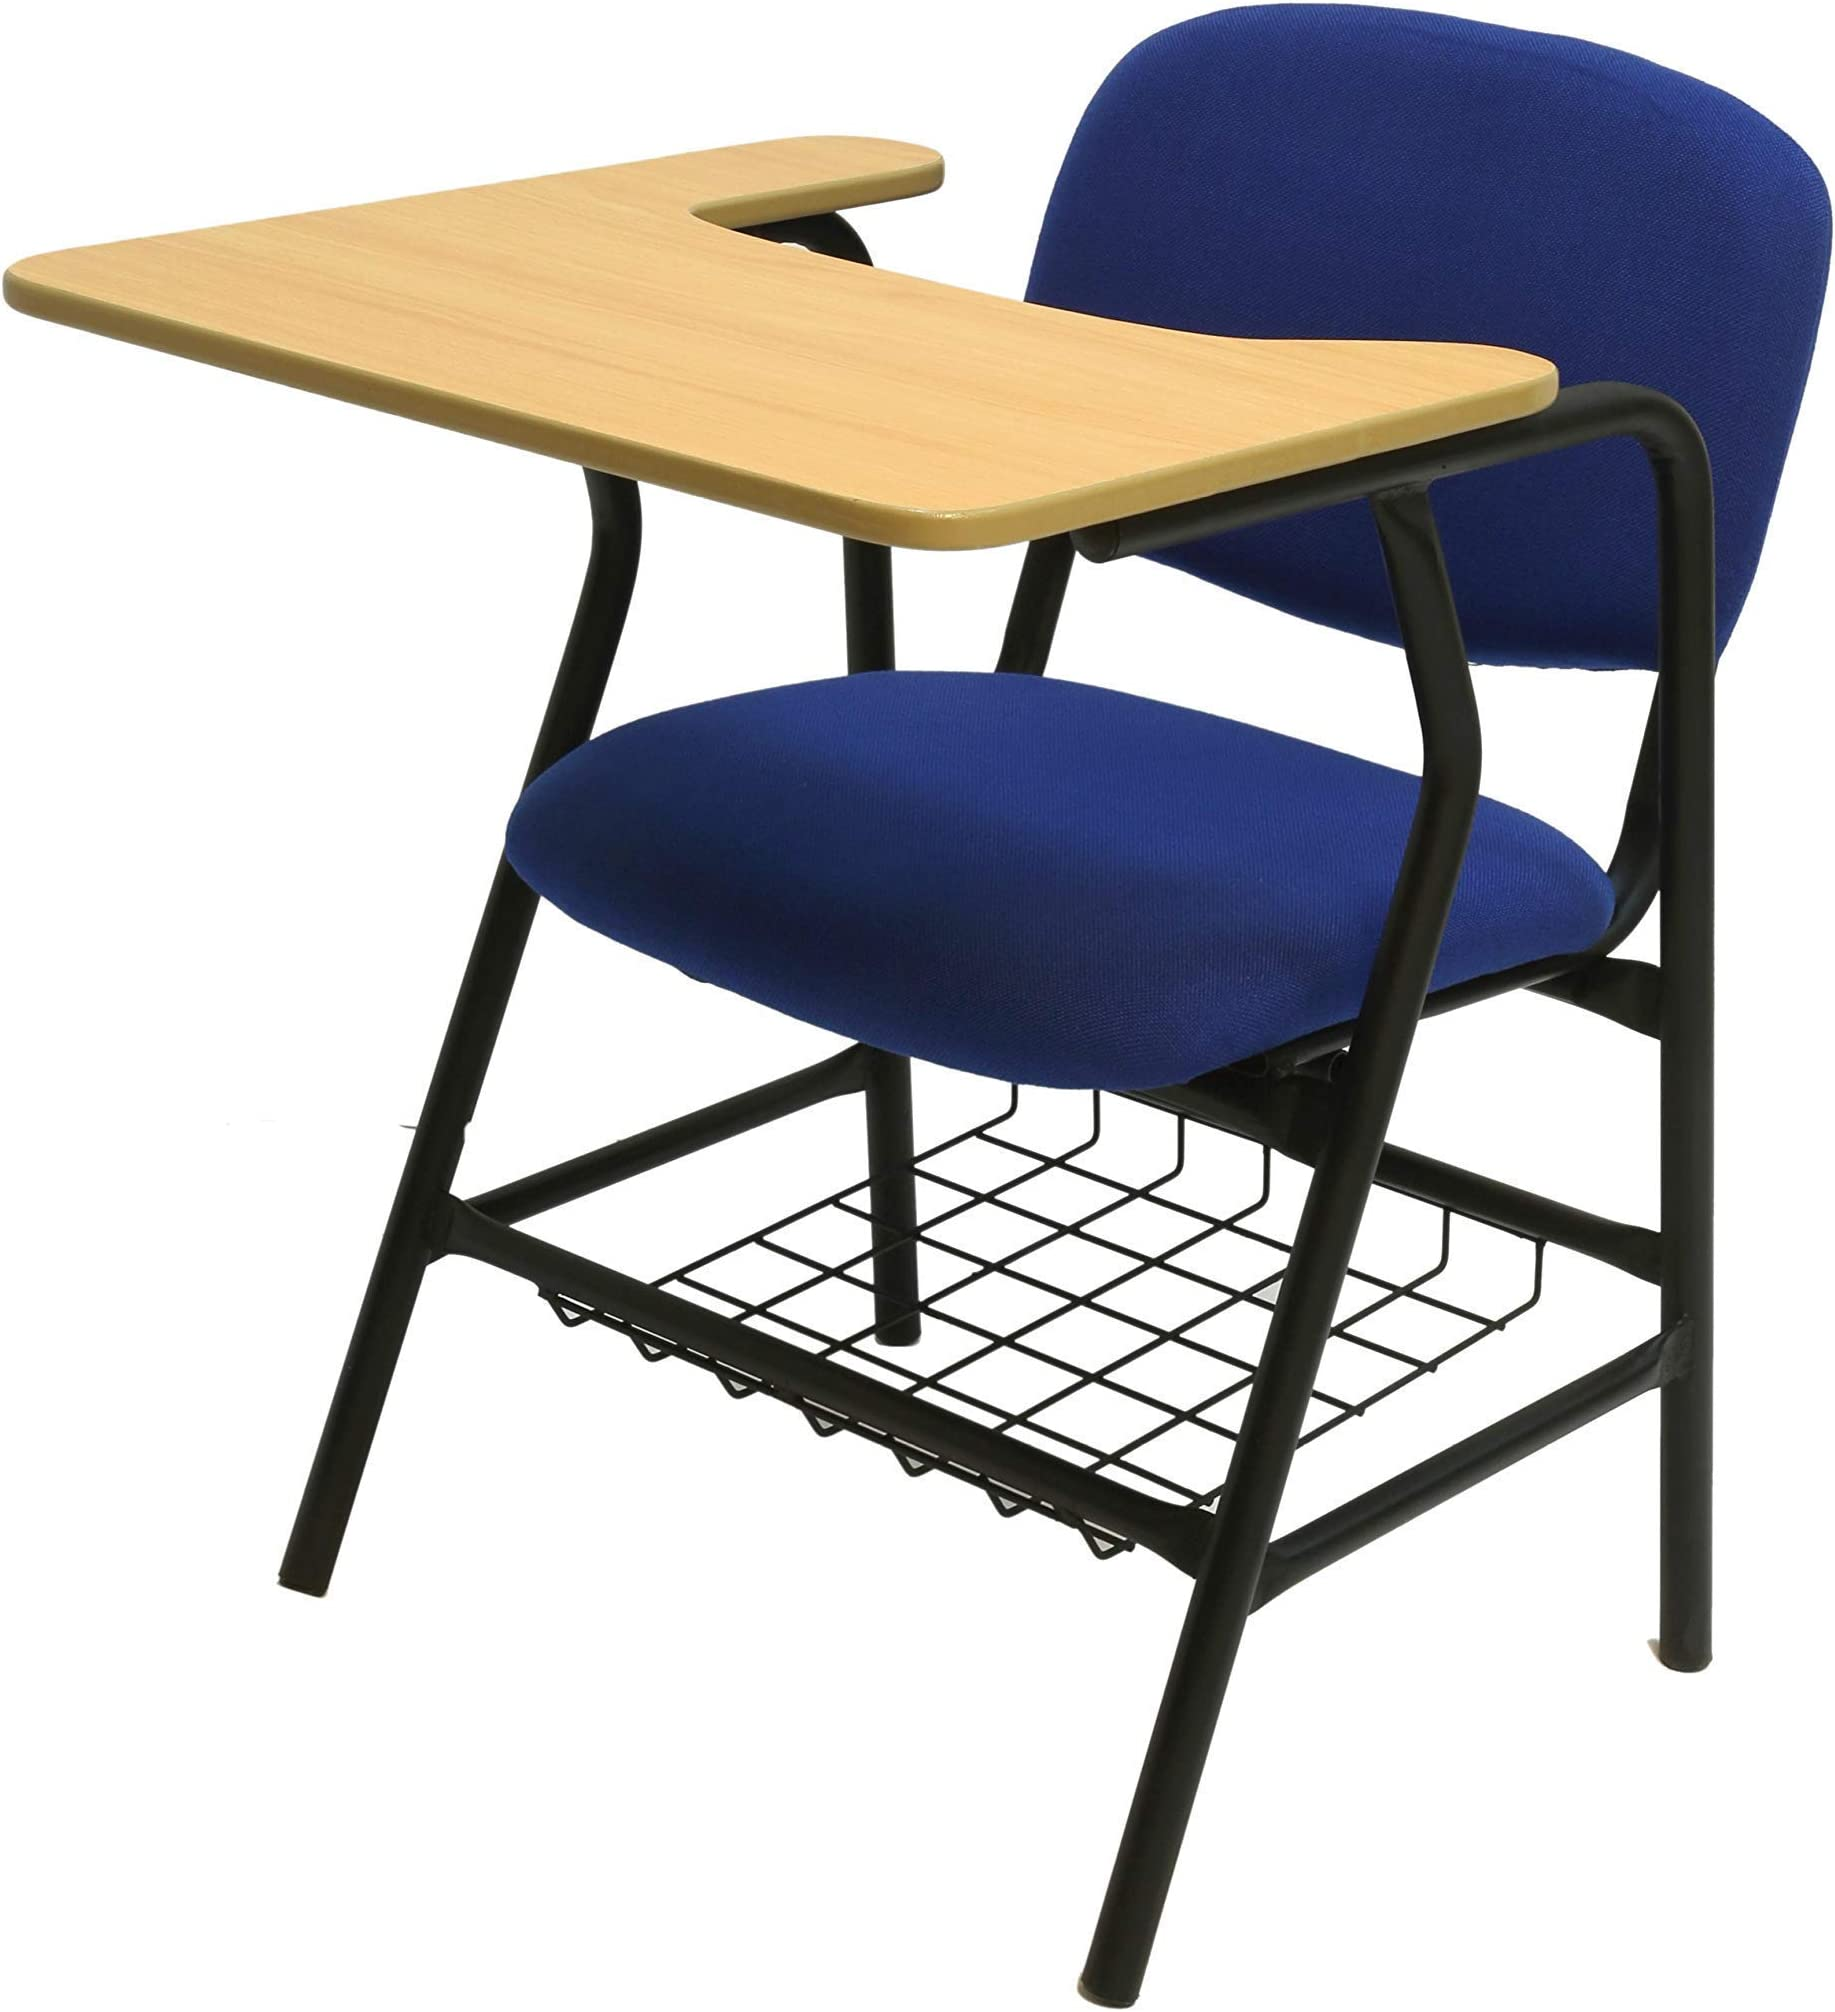 BLUE COLLEGE STUDY CHAIR WITH WRITING TABLE ON METAL FRAME